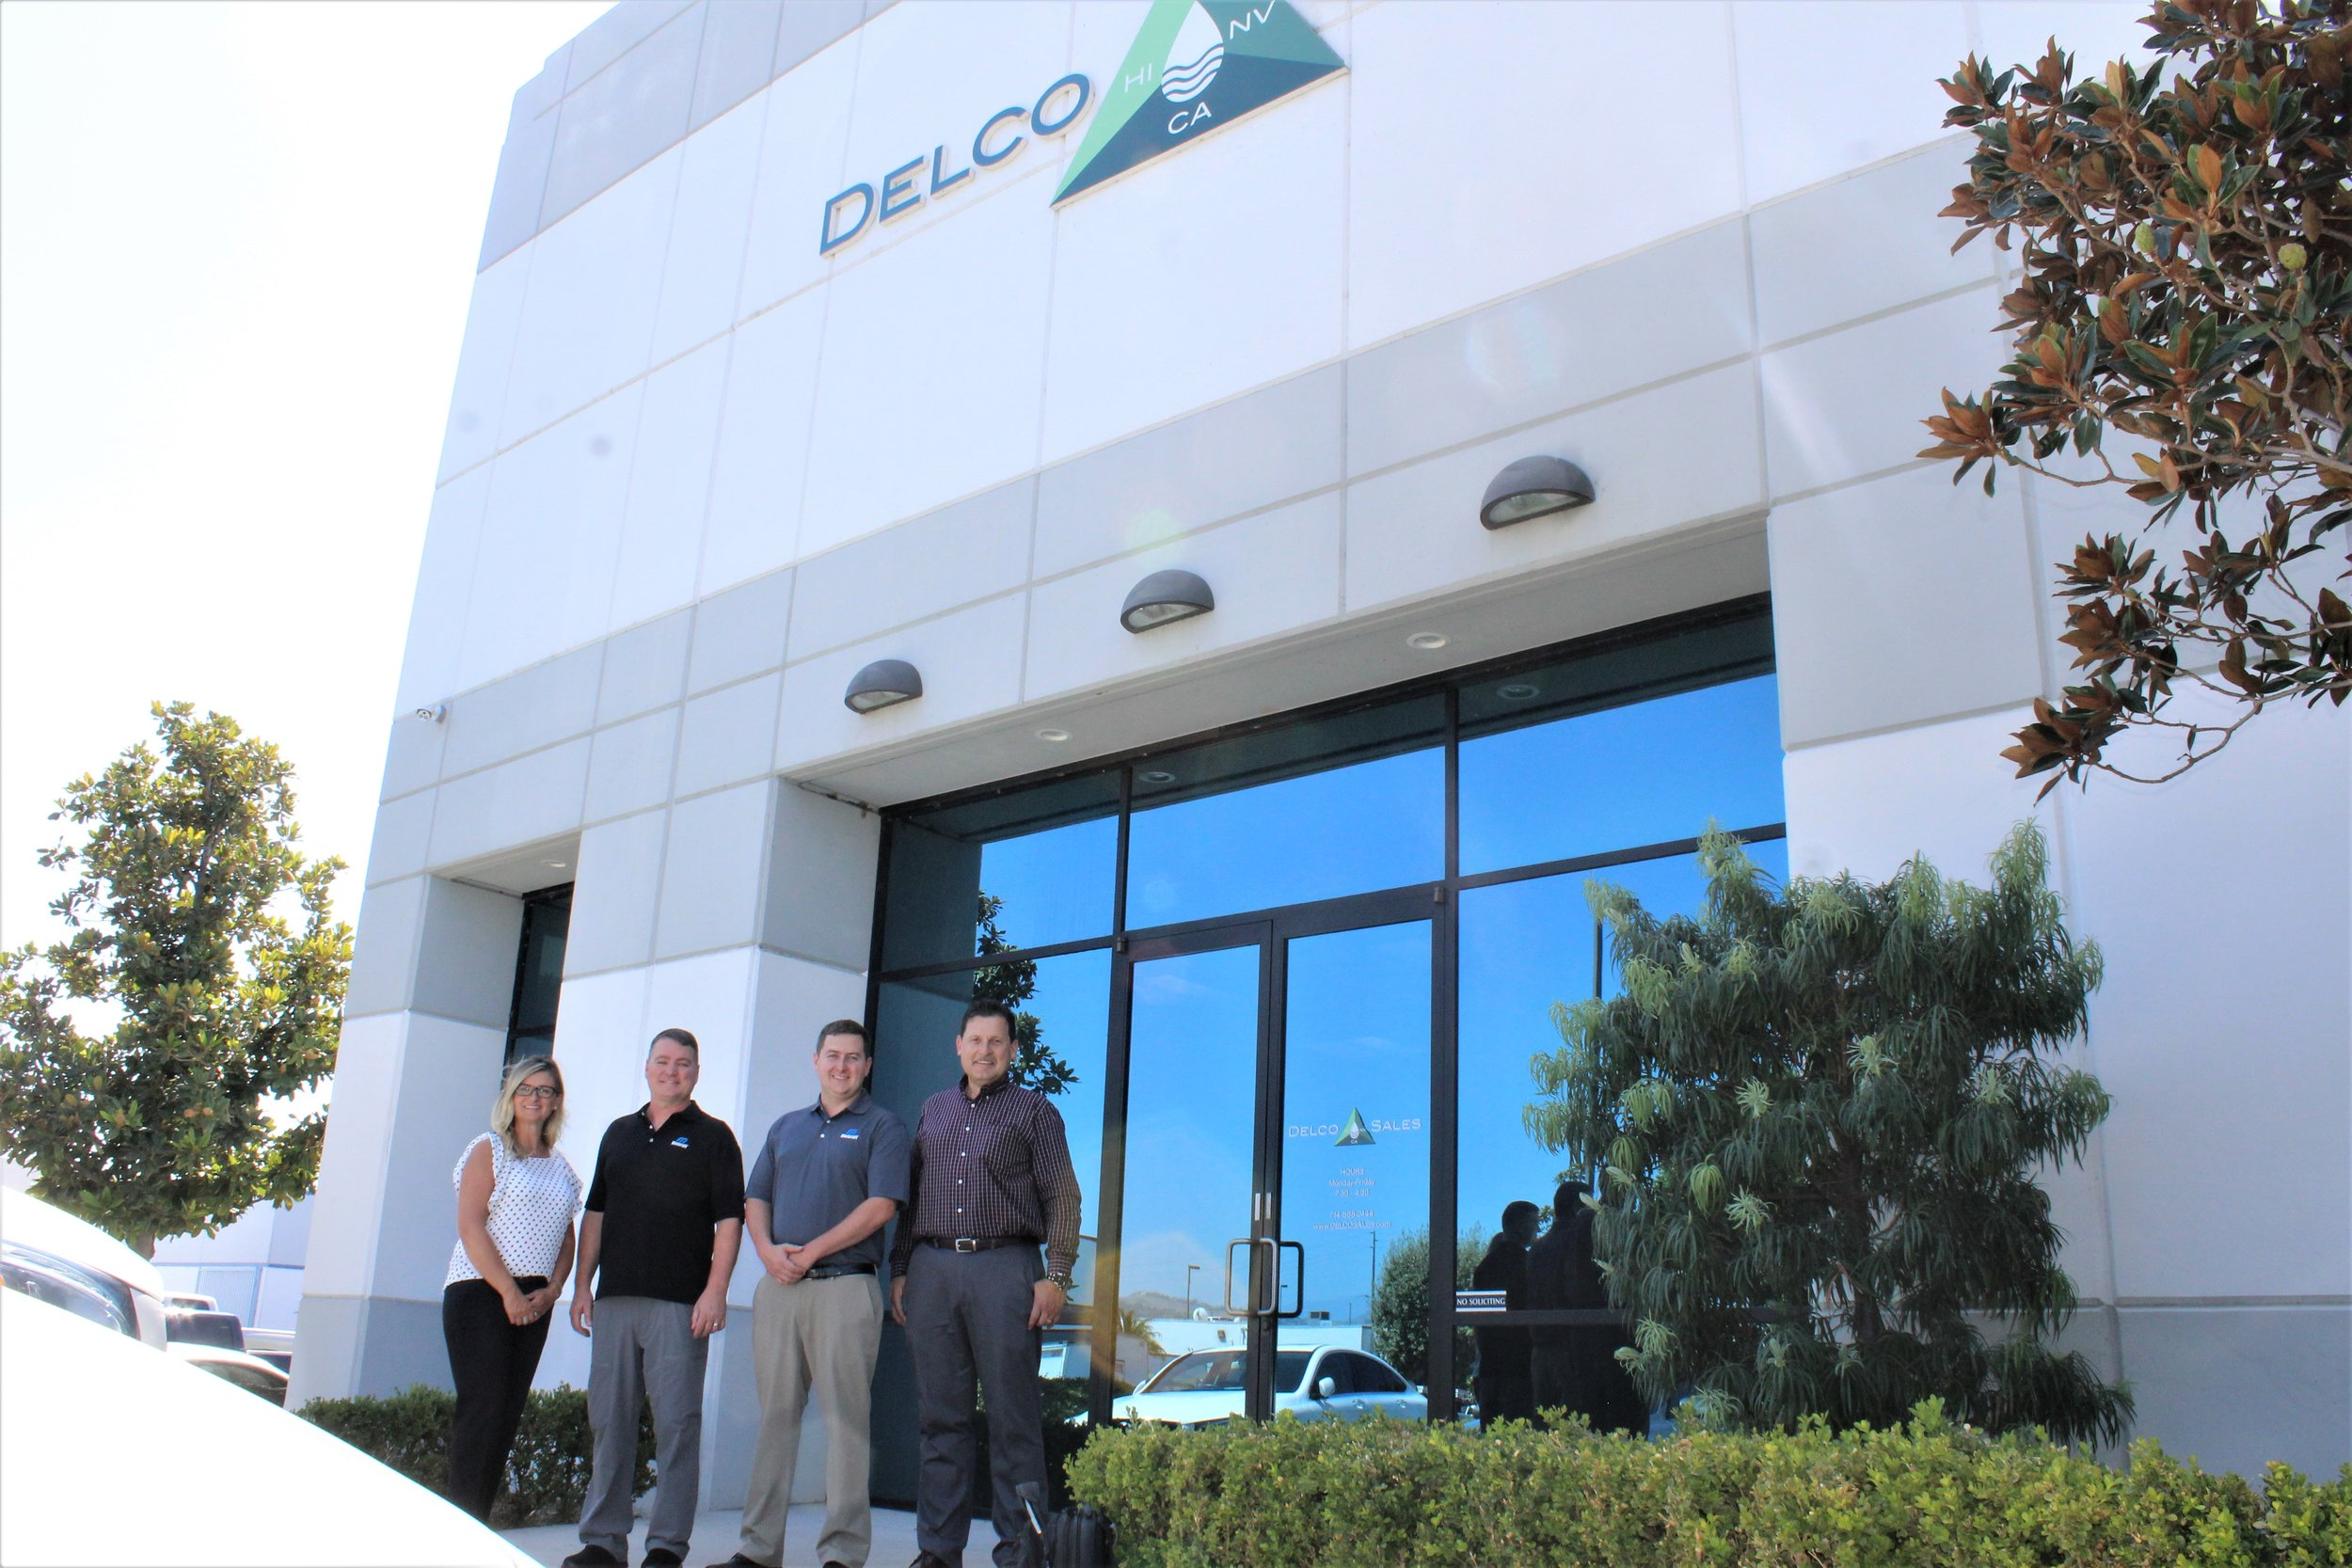 From Left To Right:   Renee Hampton (Director of Design and Specification), Stacey Wade (Sales), Jacob Ryan (Plant Manager), David David (Facilities Specifications Manager).